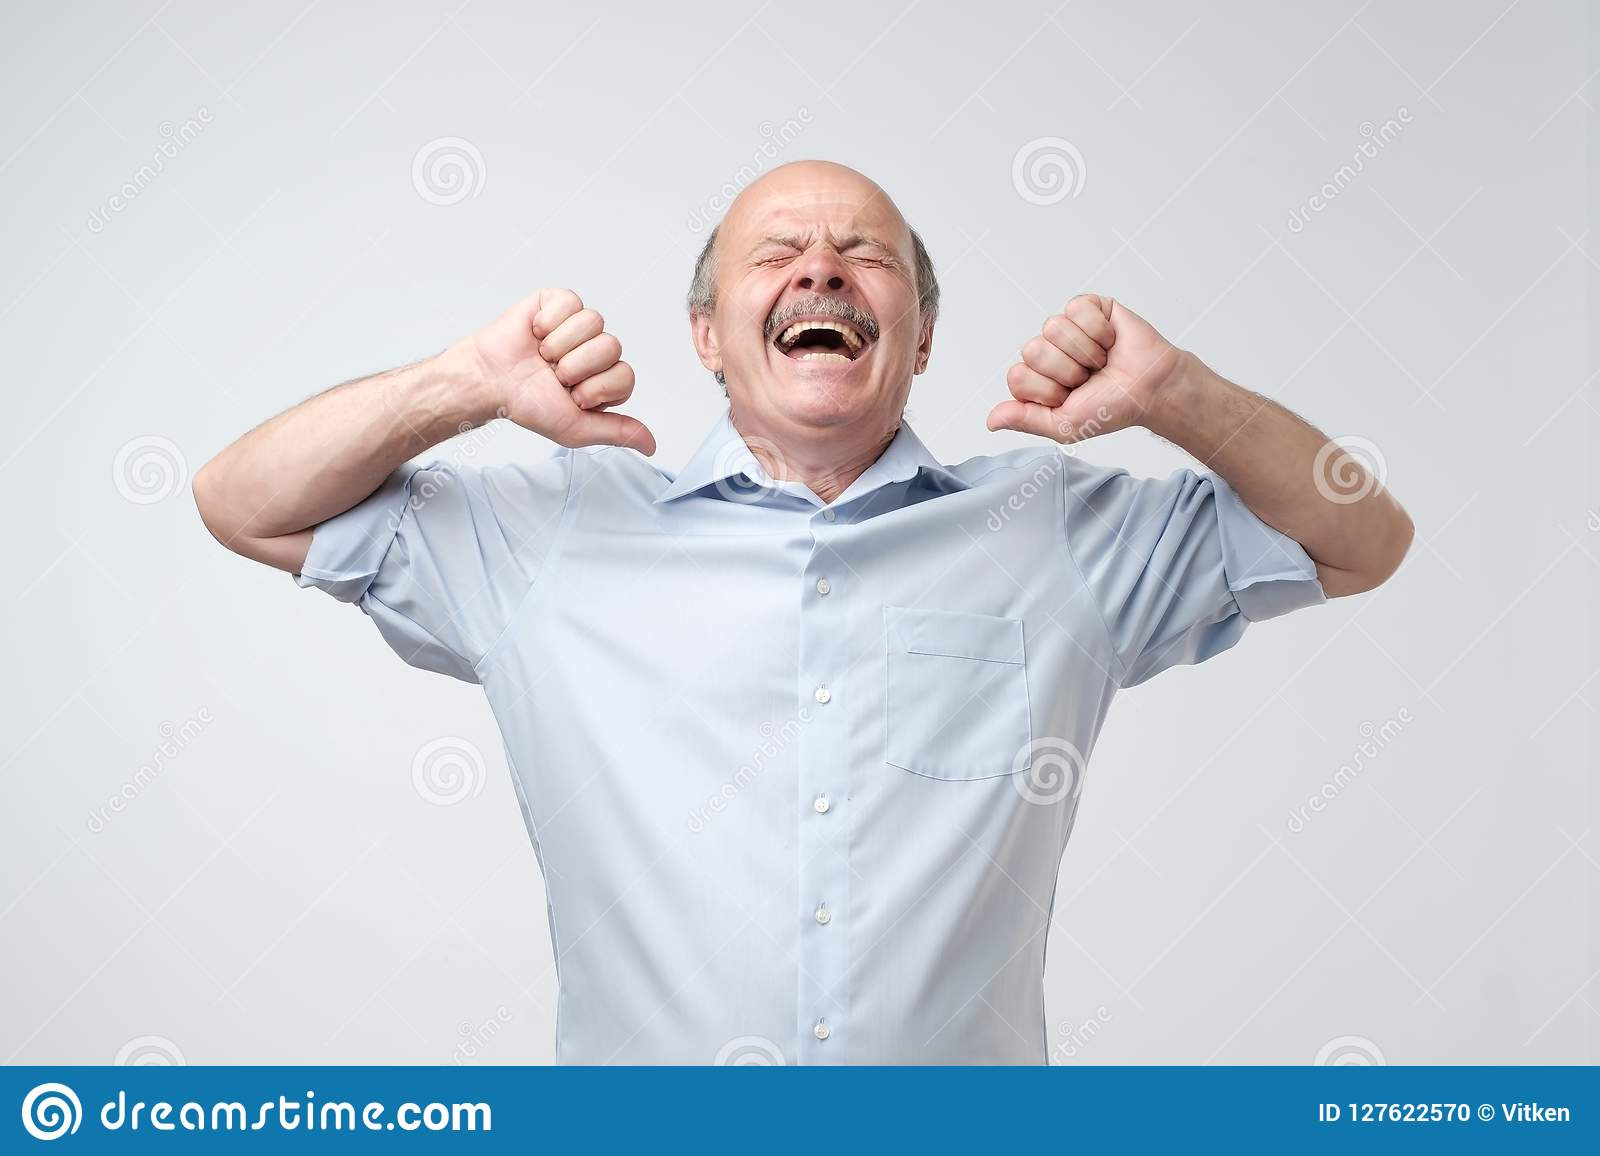 Sleepy mature bald man with mustache is yawning, because he is tired.